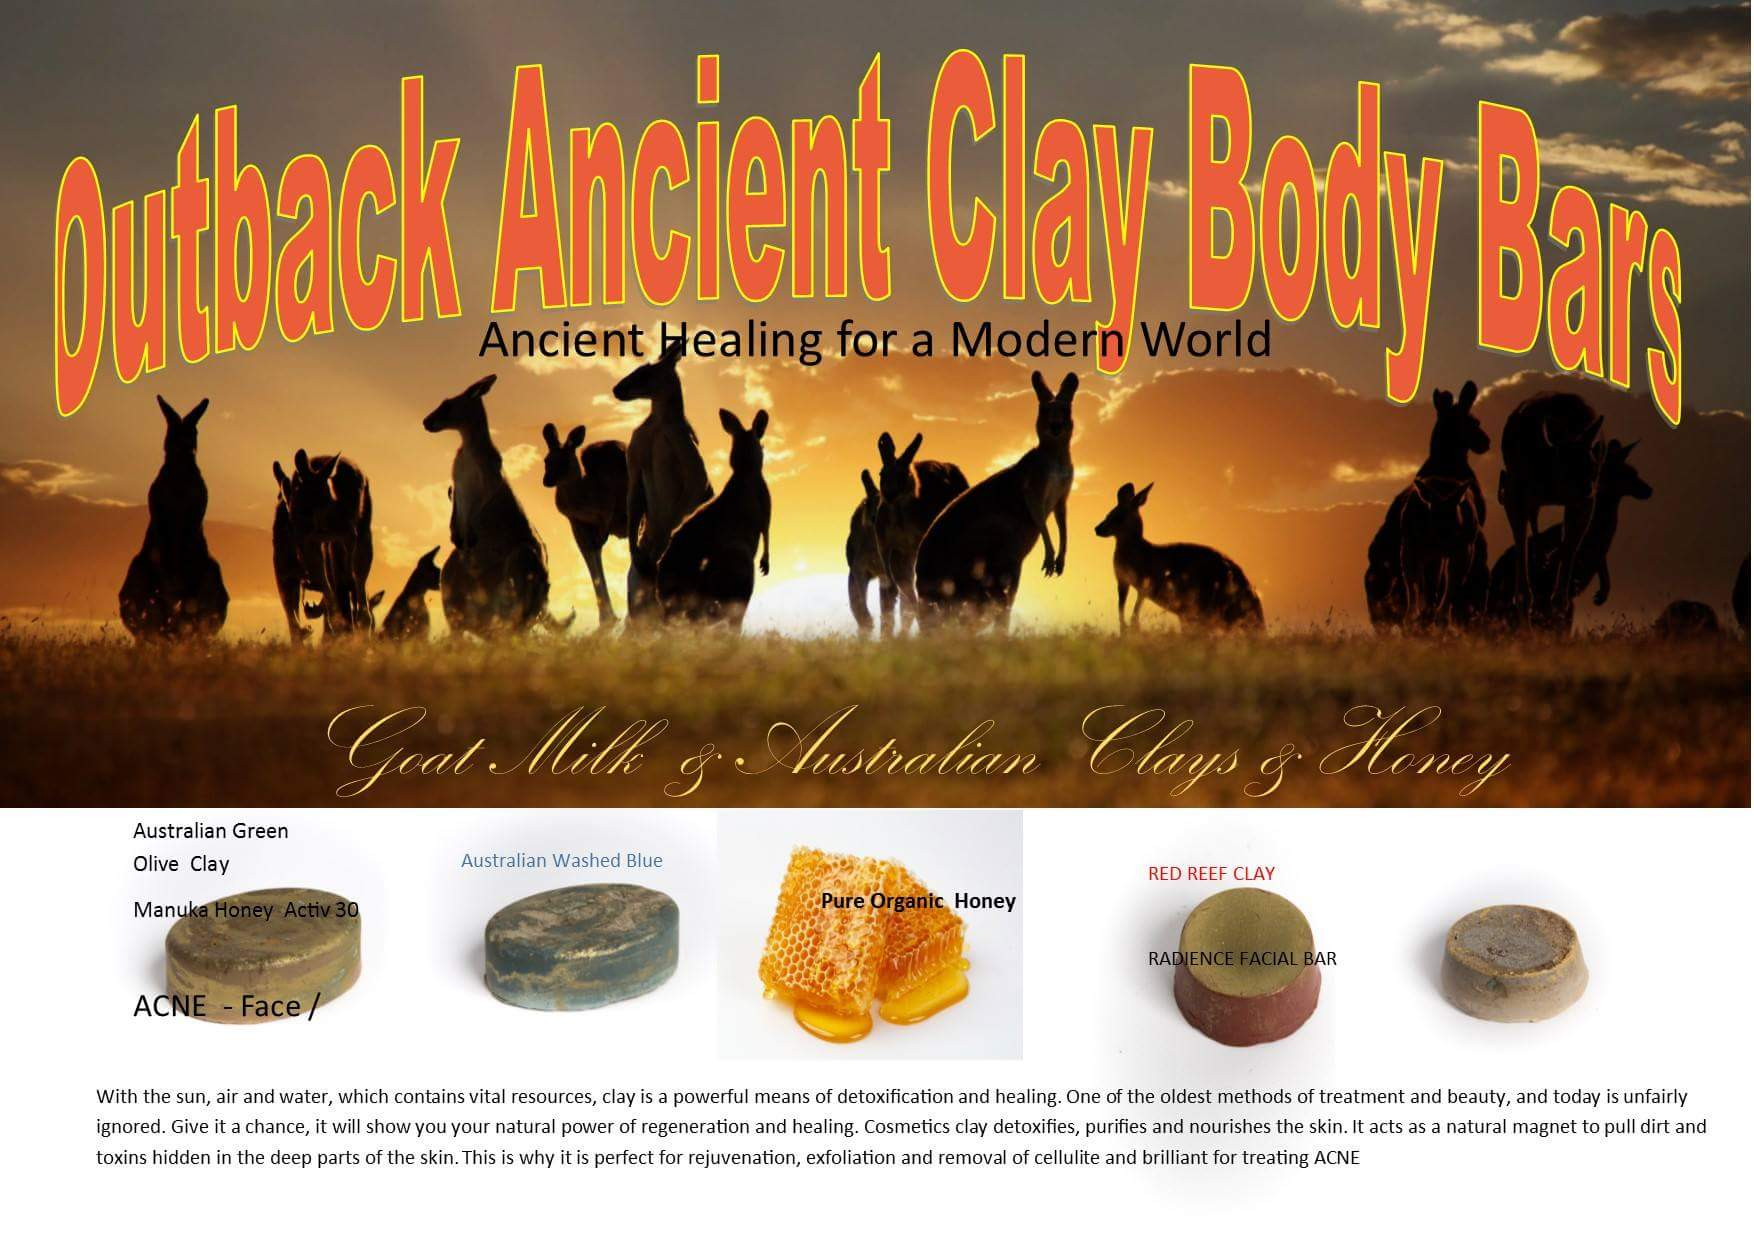 Ancient Clay Body Bars